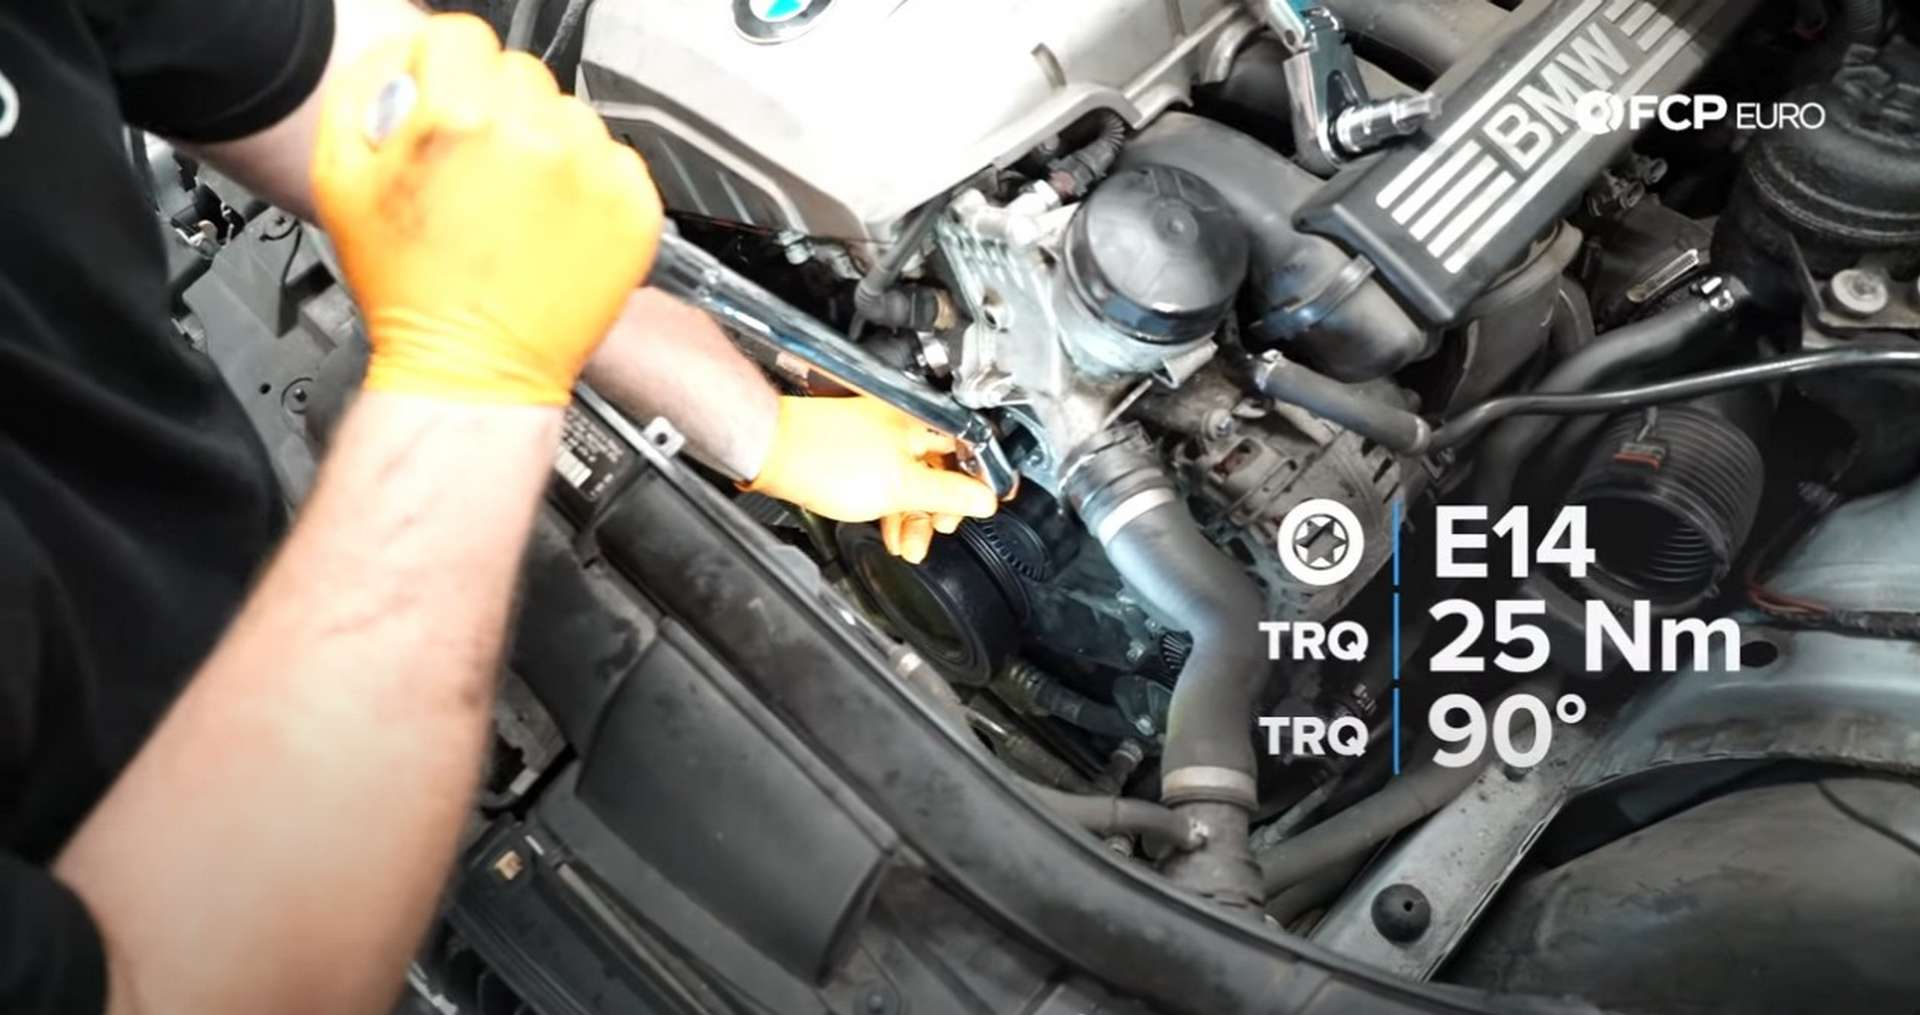 DIY BMW N52 Drive Belt Replacement torquing the tensioner's bolt and torque specs